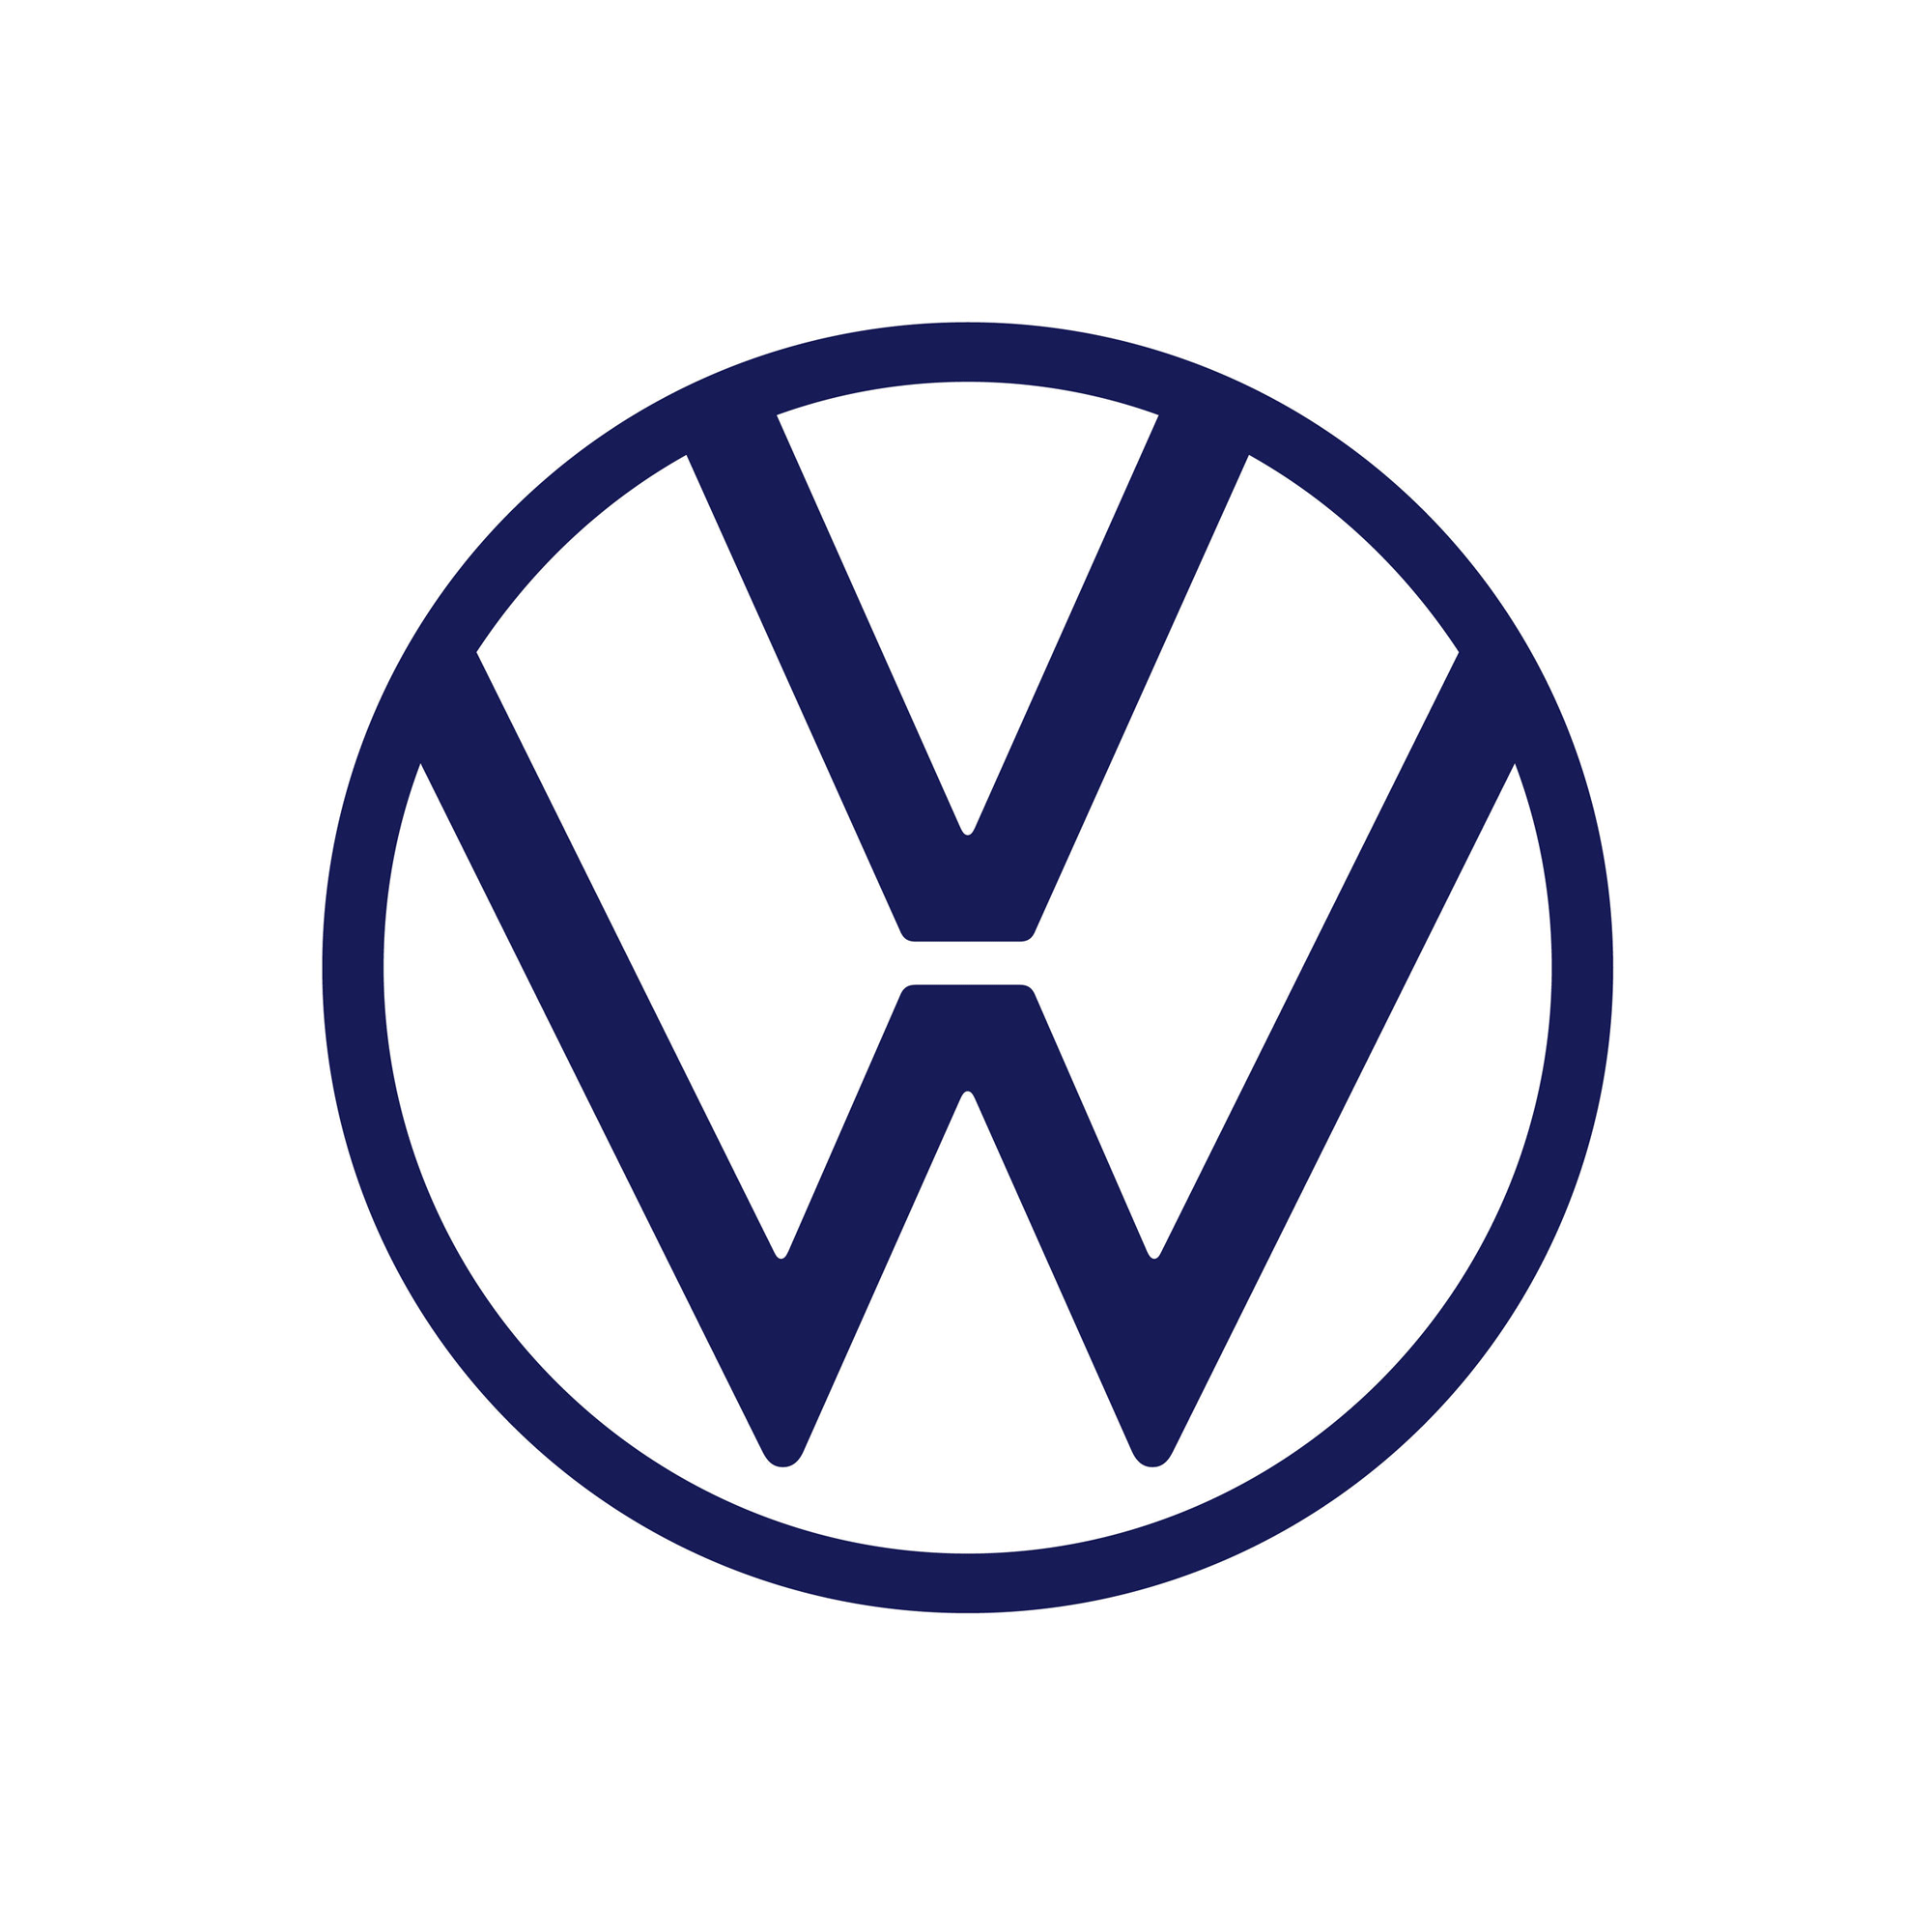 Brand New New Logo And Identity For Volkswagen Done In House Car Brands Logos Volkswagen Logo Volkswagen